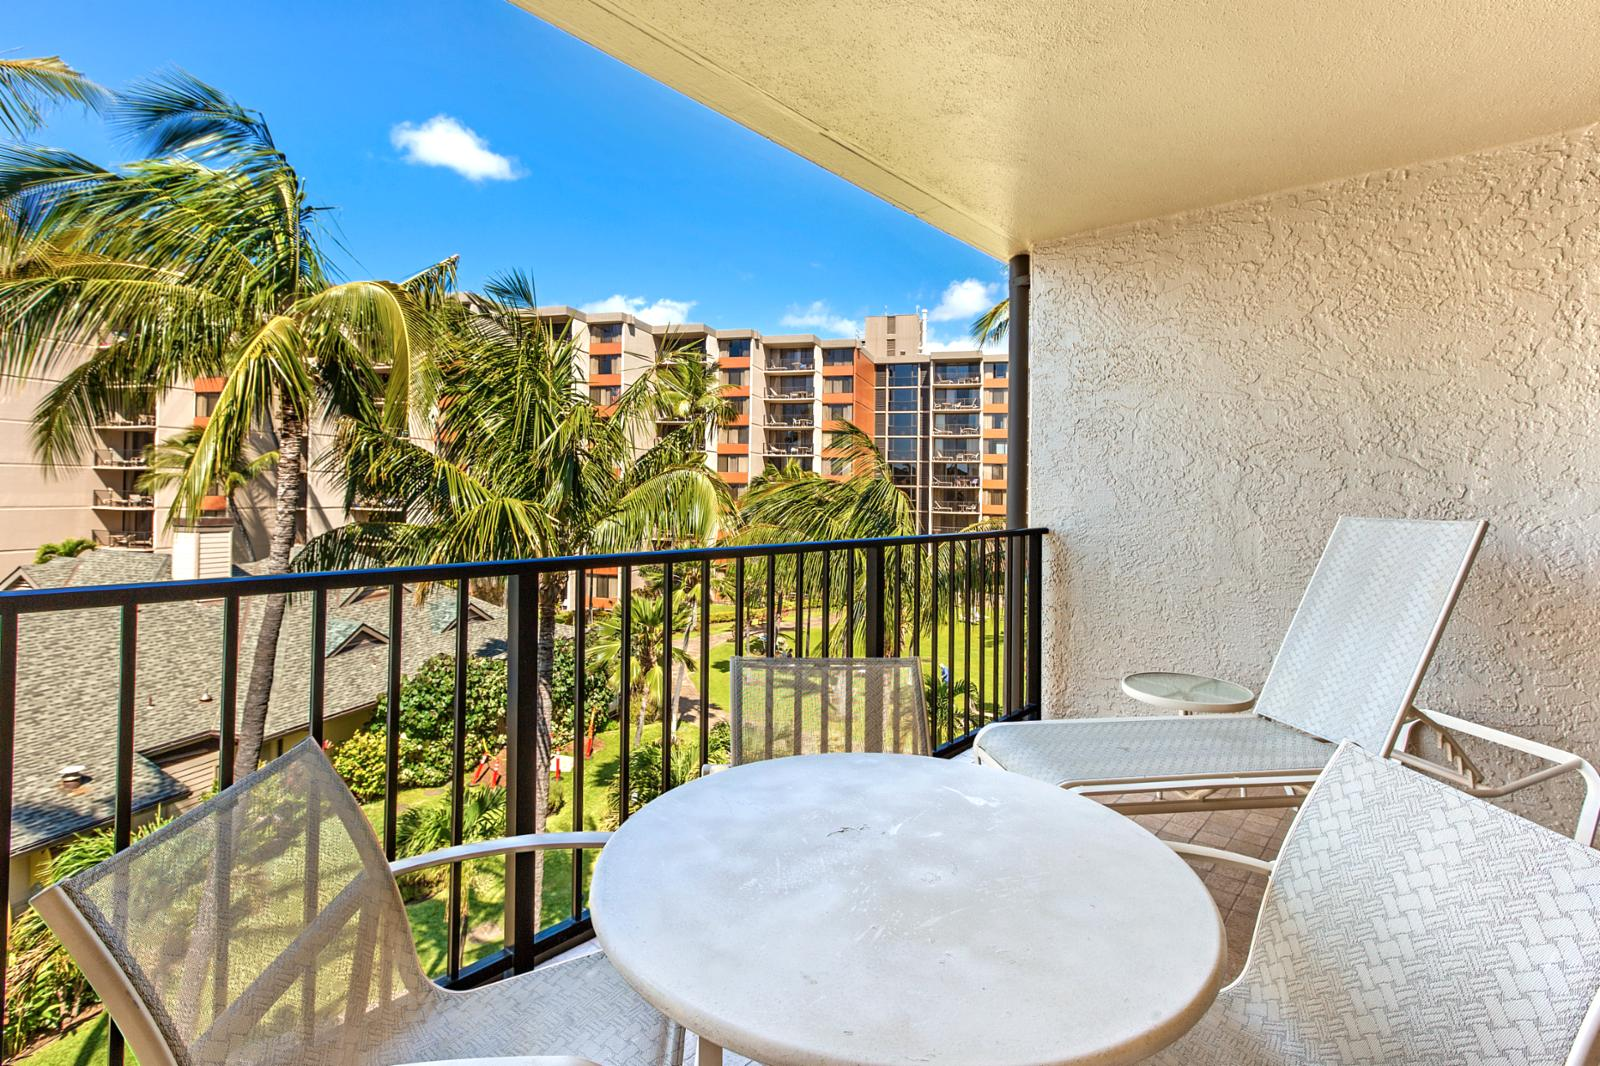 Relax and reflect while enjoying this private balcony